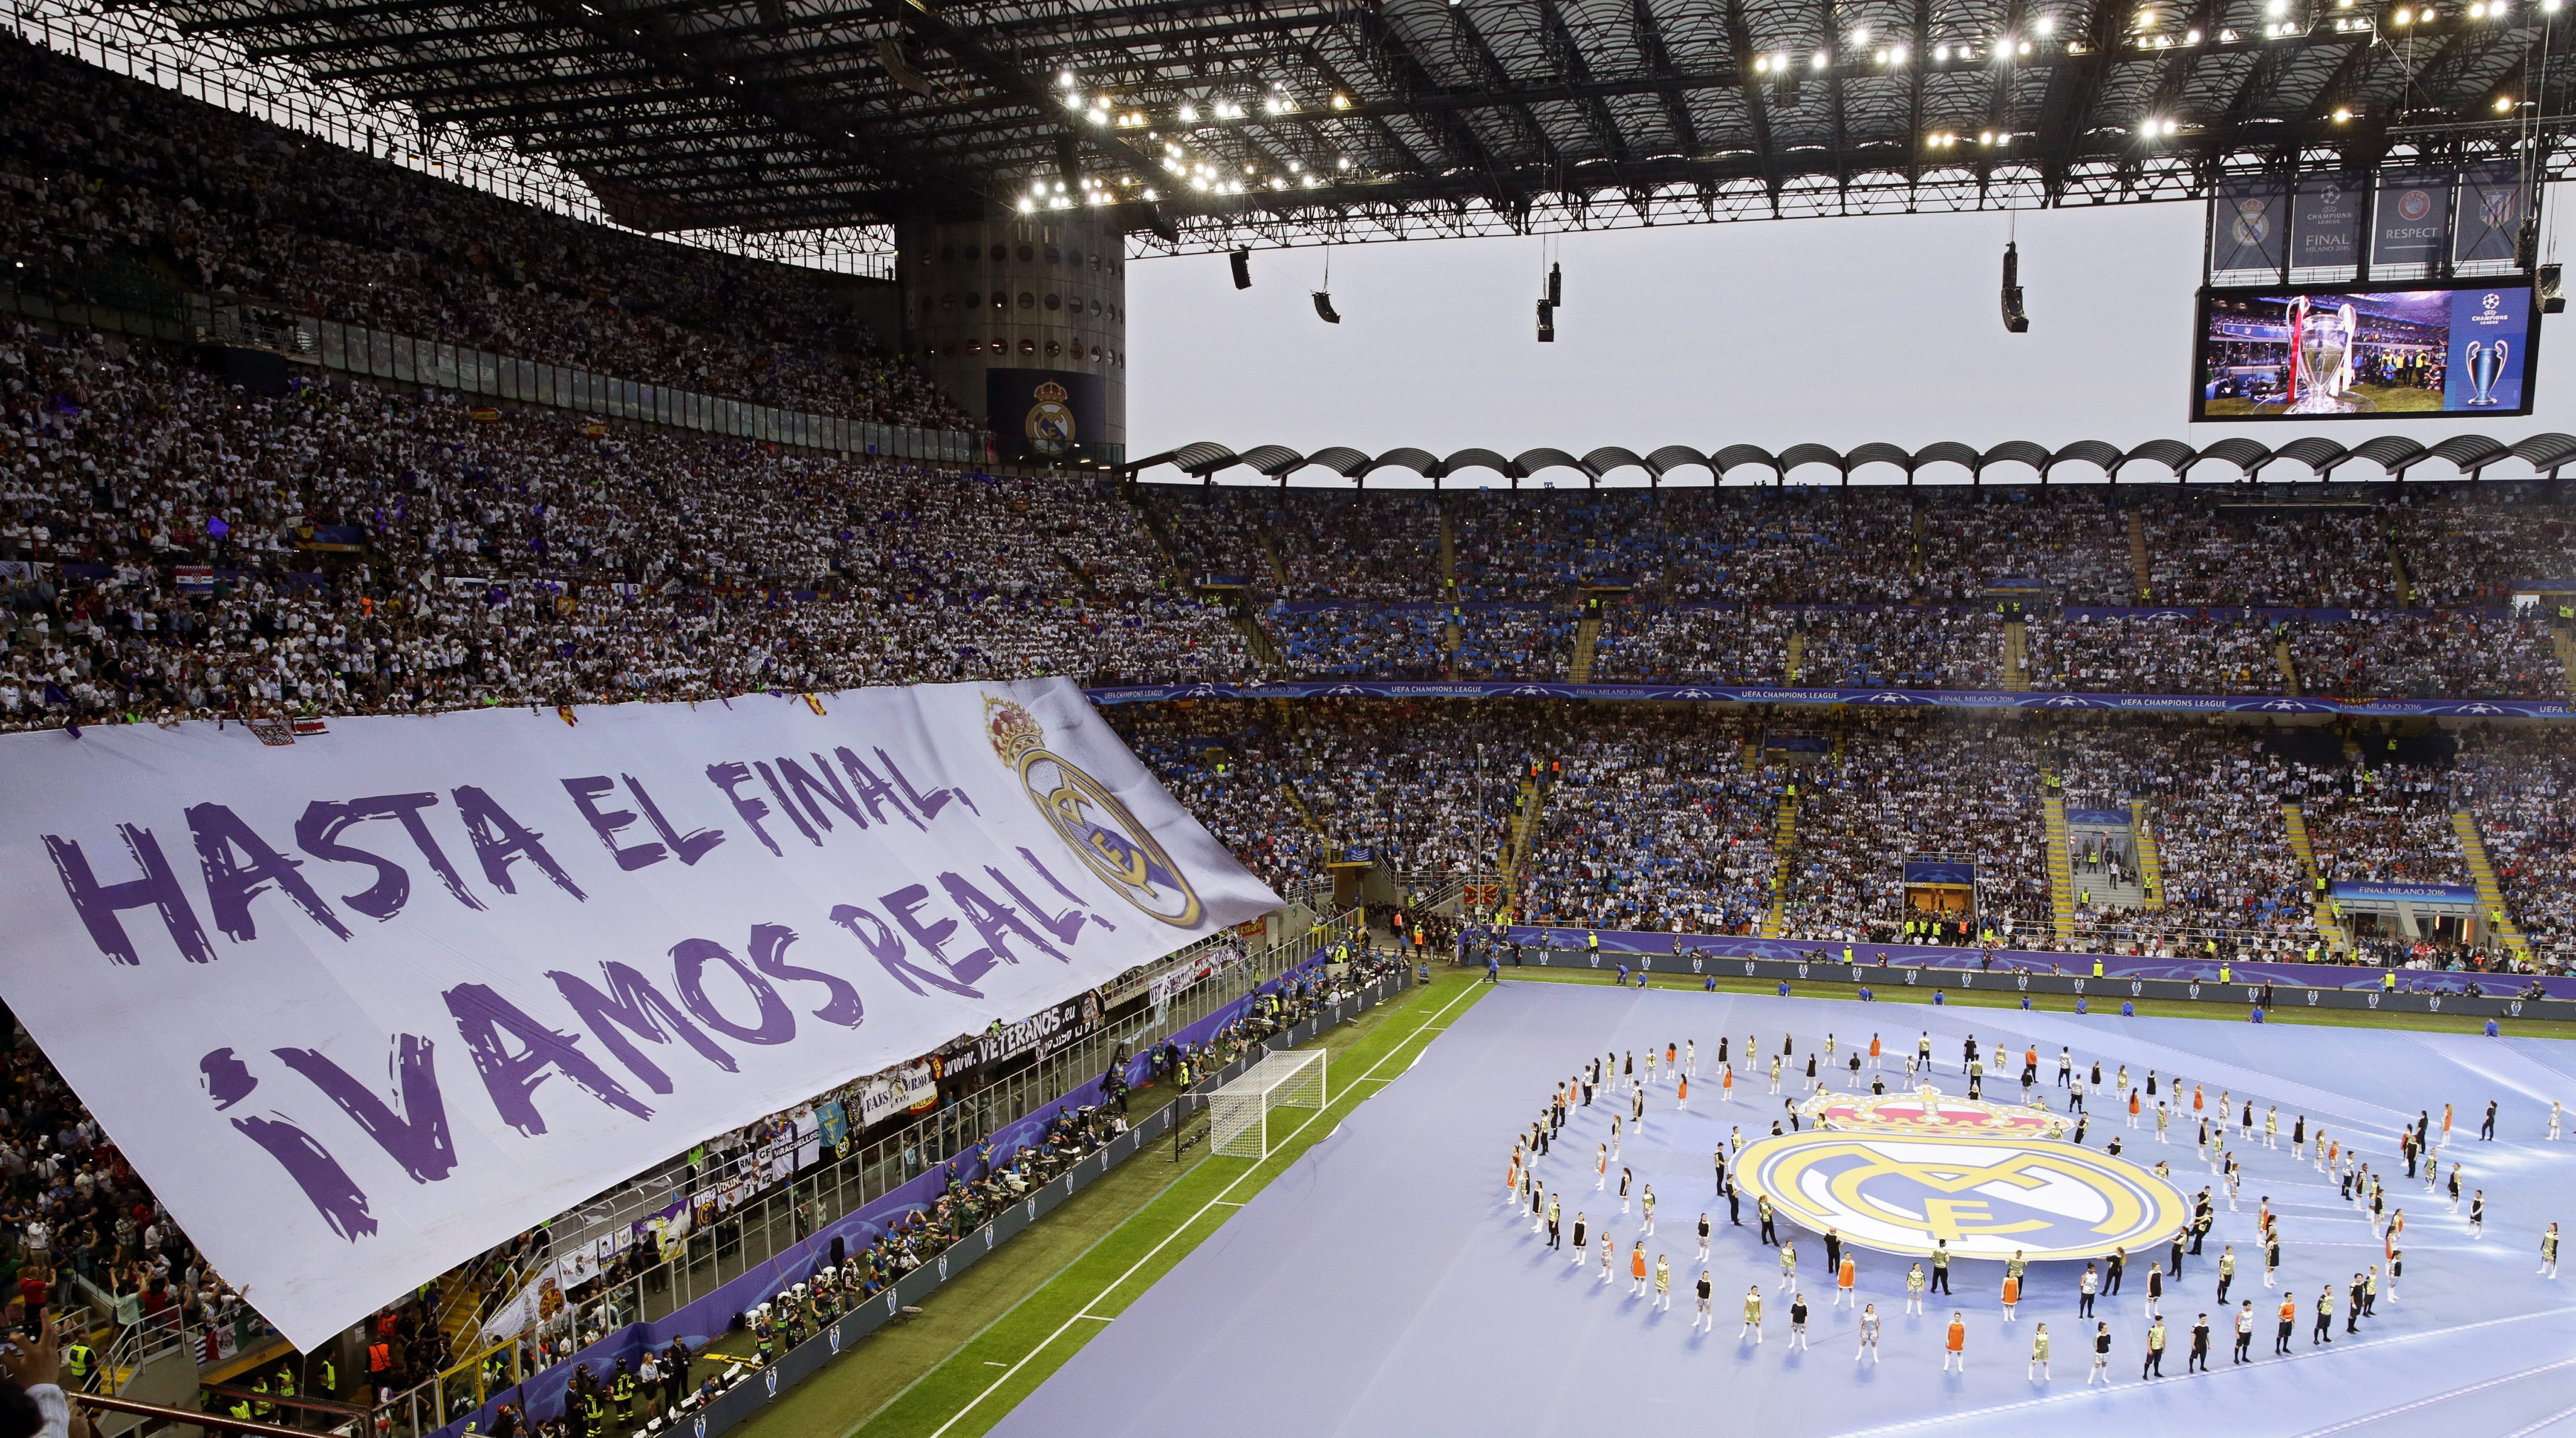 . Milan (Italy), 28/05/2016.- Real Madrid supporters cheer for their team before the UEFA Champions League final between Real Madrid and Atletico Madrid at the Giuseppe Meazza Stadium in Milan, Italy, 28 May 2016. (Liga de Campeones, Italia) EFE/EPA/ARMANDO BABANI